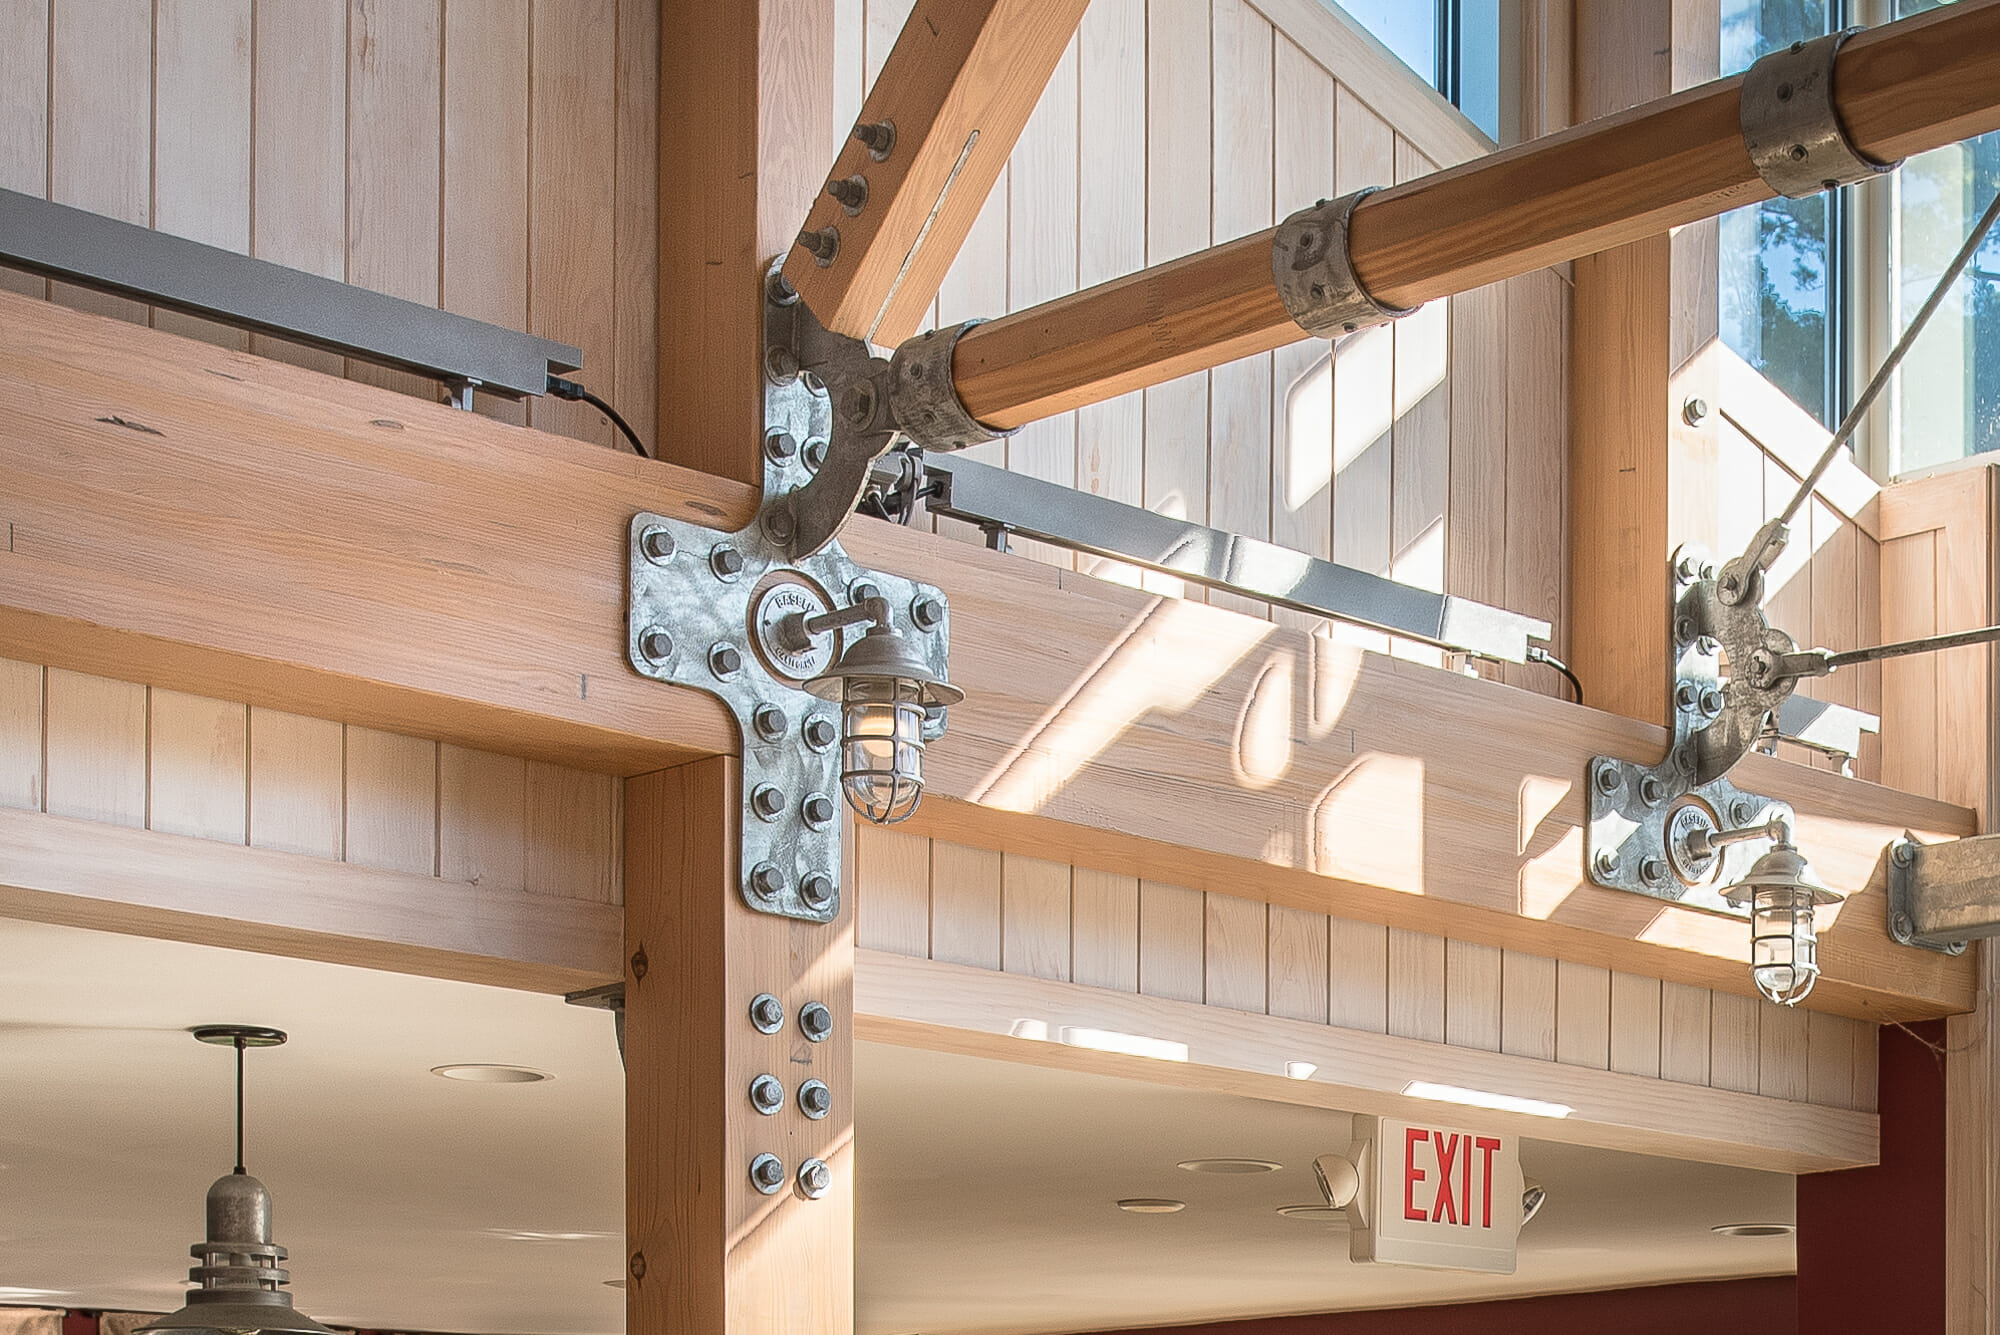 Steel Gusset Plate Detail and Glulam Beams in the 57 State Street Restaurant